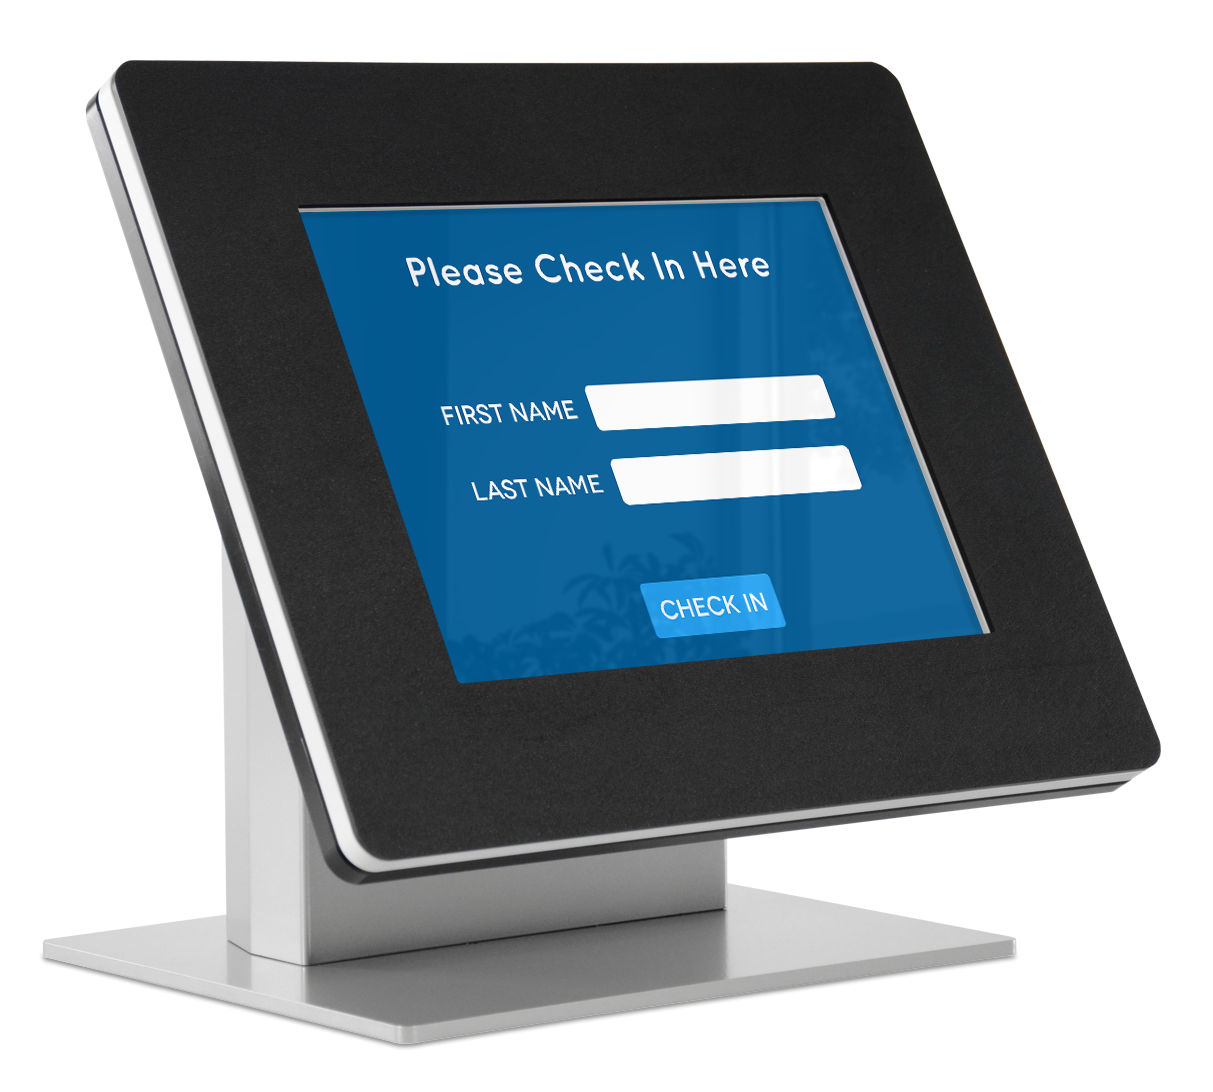 Use a kiosk for visitor check in.